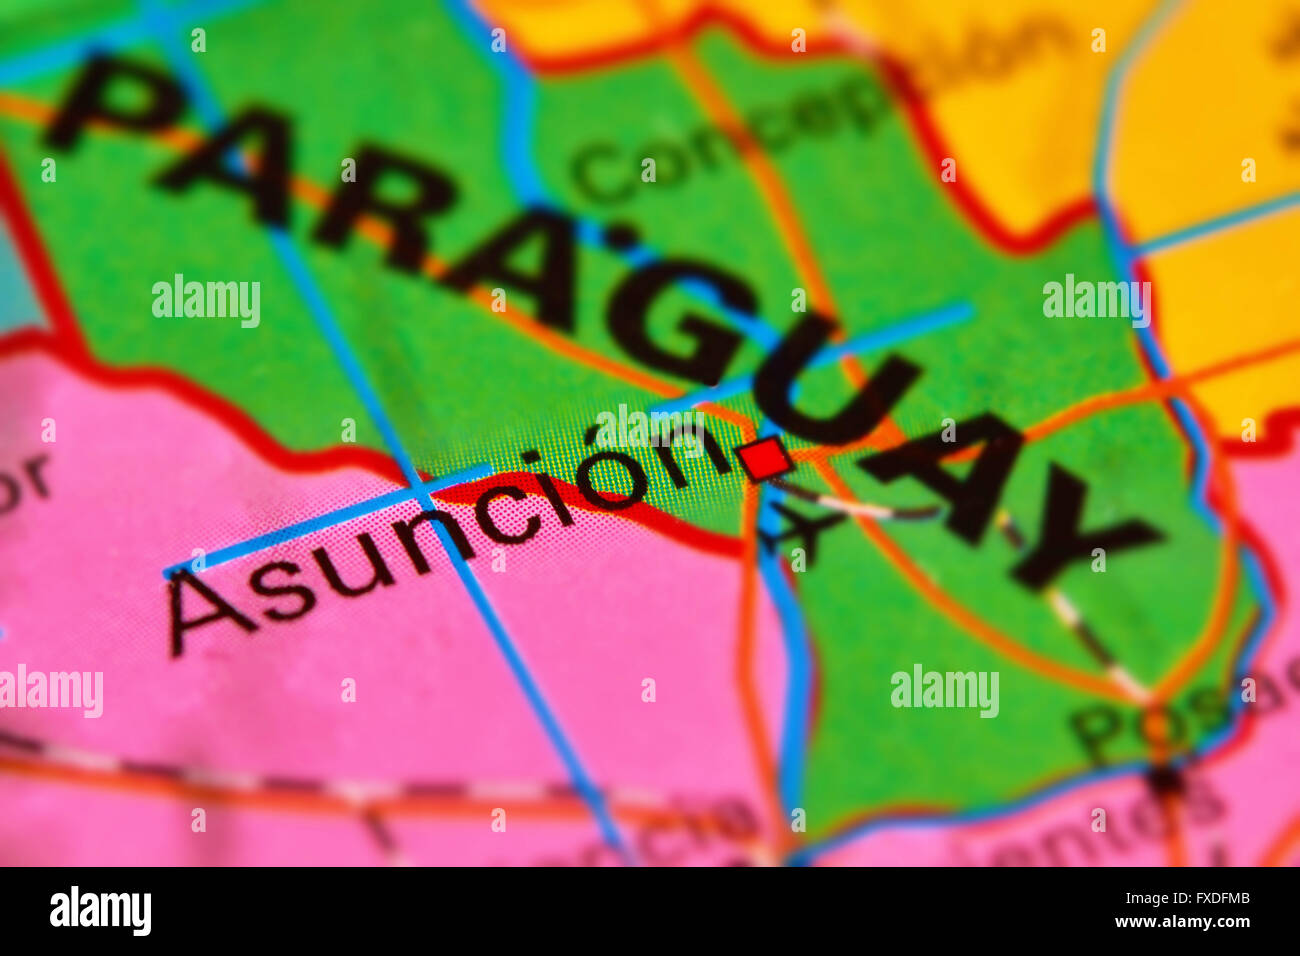 Paraguay and Capital City Asuncion on the World Map Stock Photo